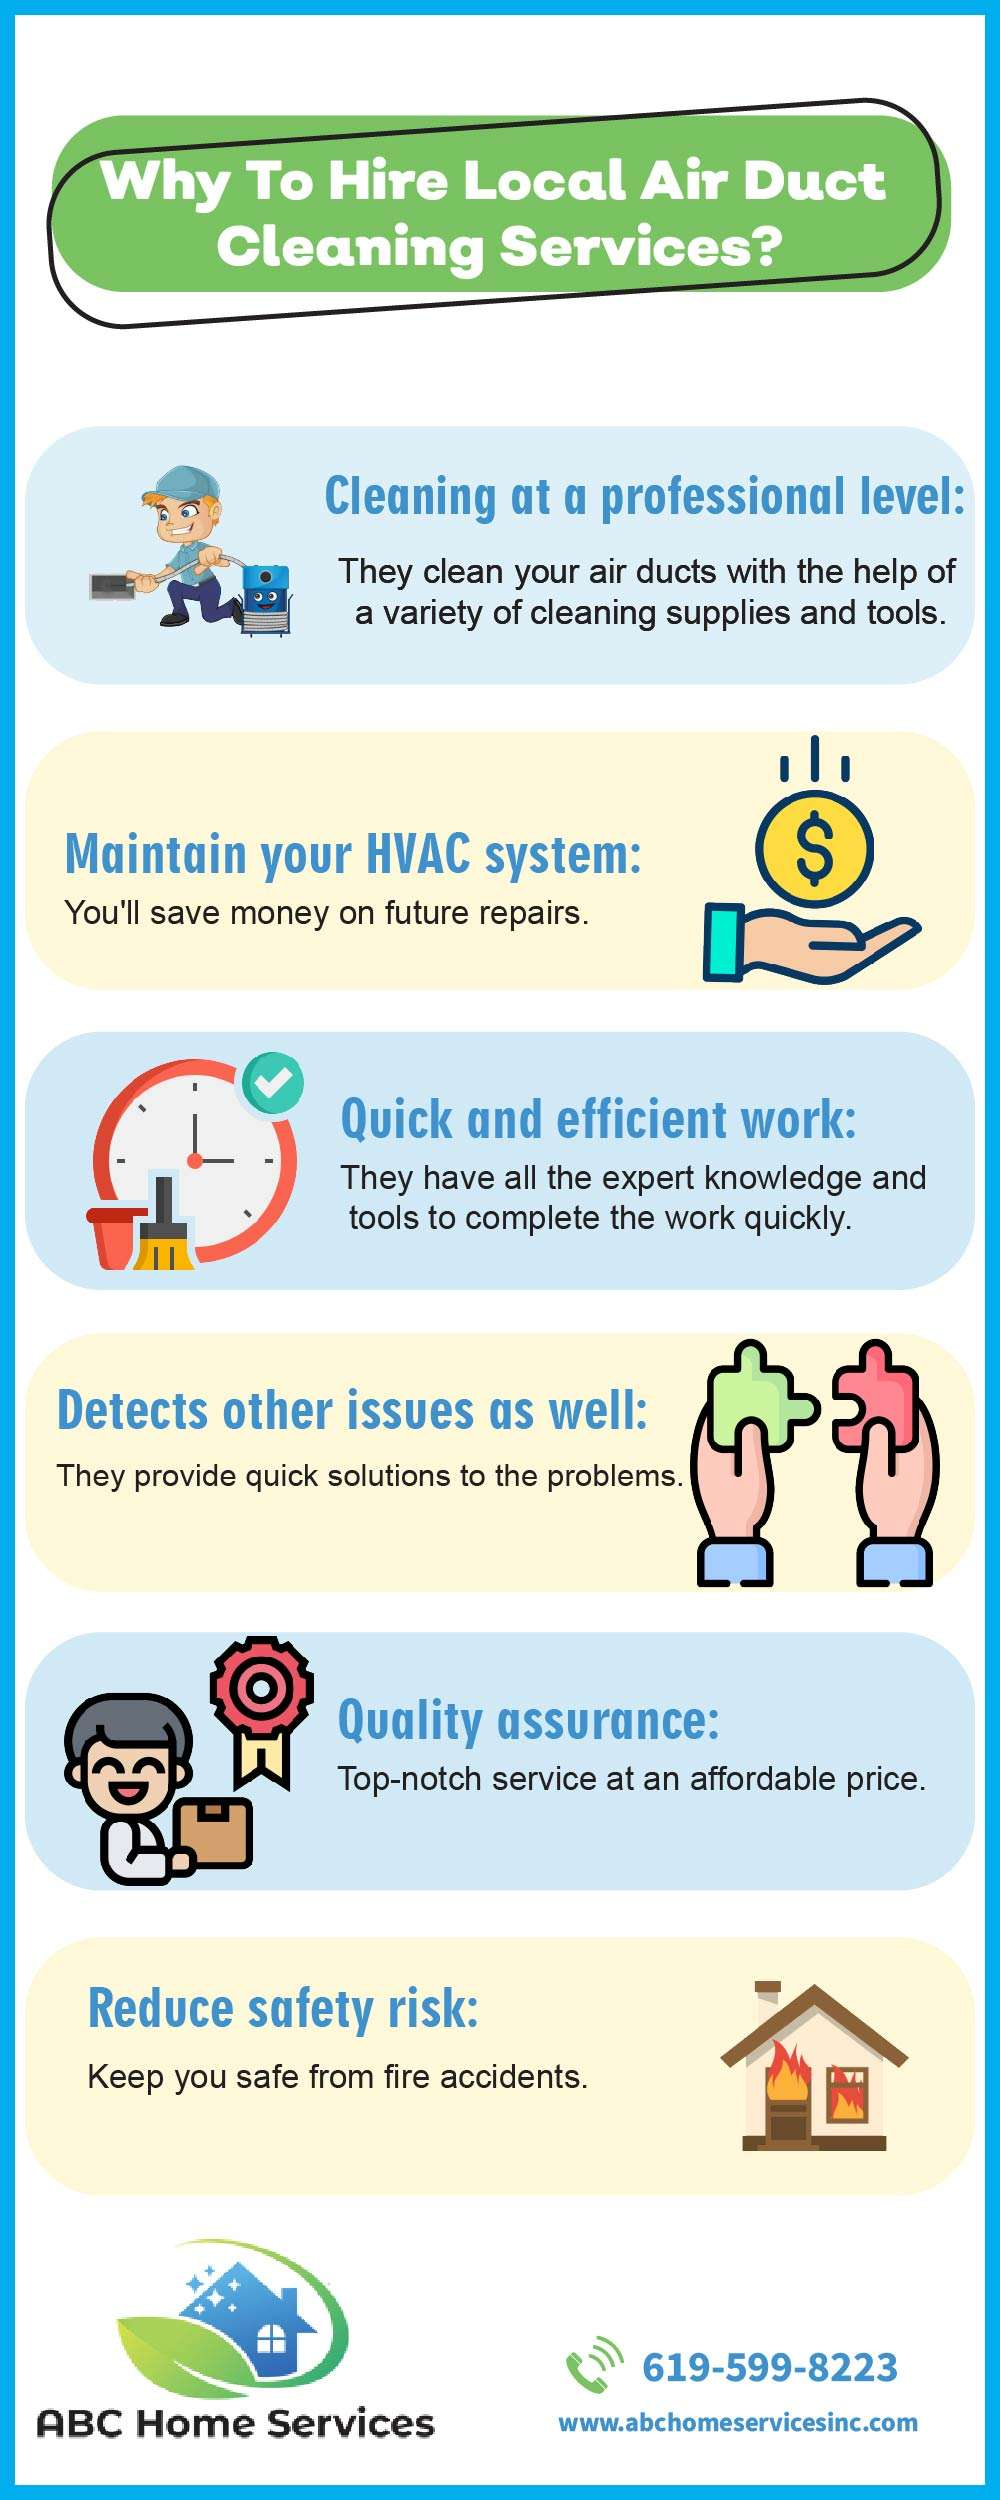 Why To Hire Local Air Duct Cleaning Services [Infographic]